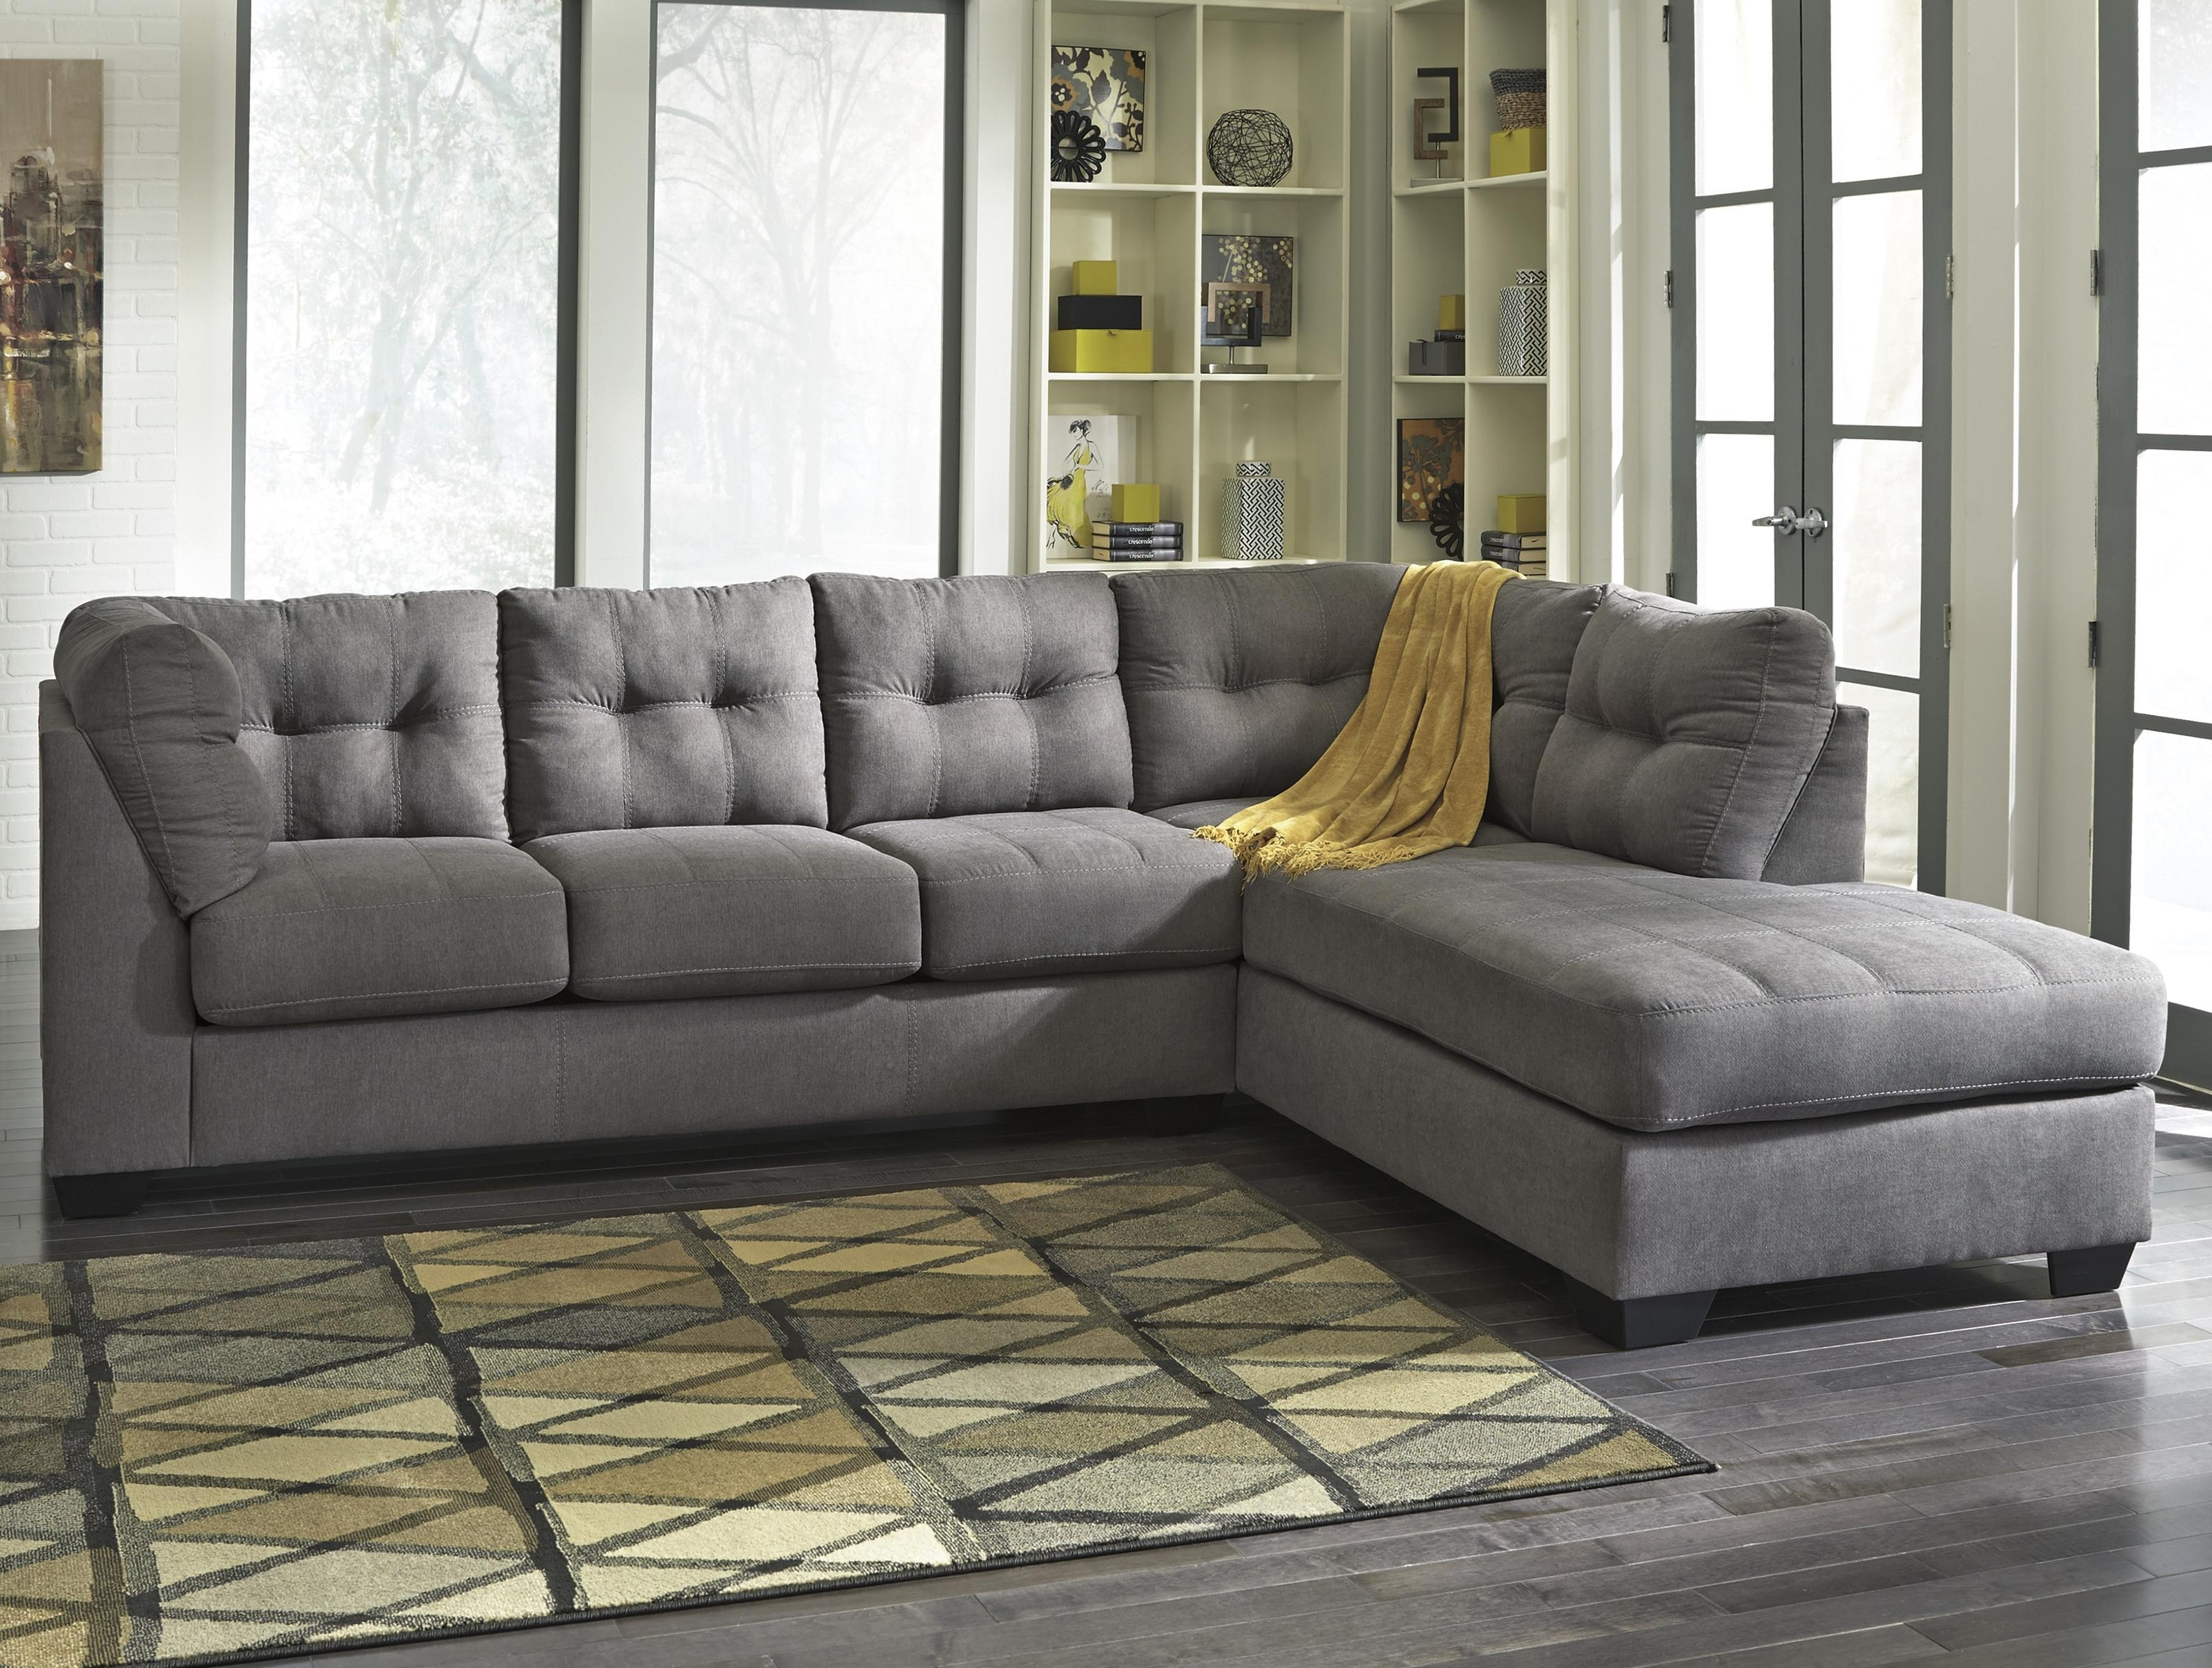 Benchcraft Maier – Charcoal 2 Piece Sectional W/ Sleeper Sofa With Regard To Well Known Sectional Sleeper Sofas With Chaise (View 3 of 20)